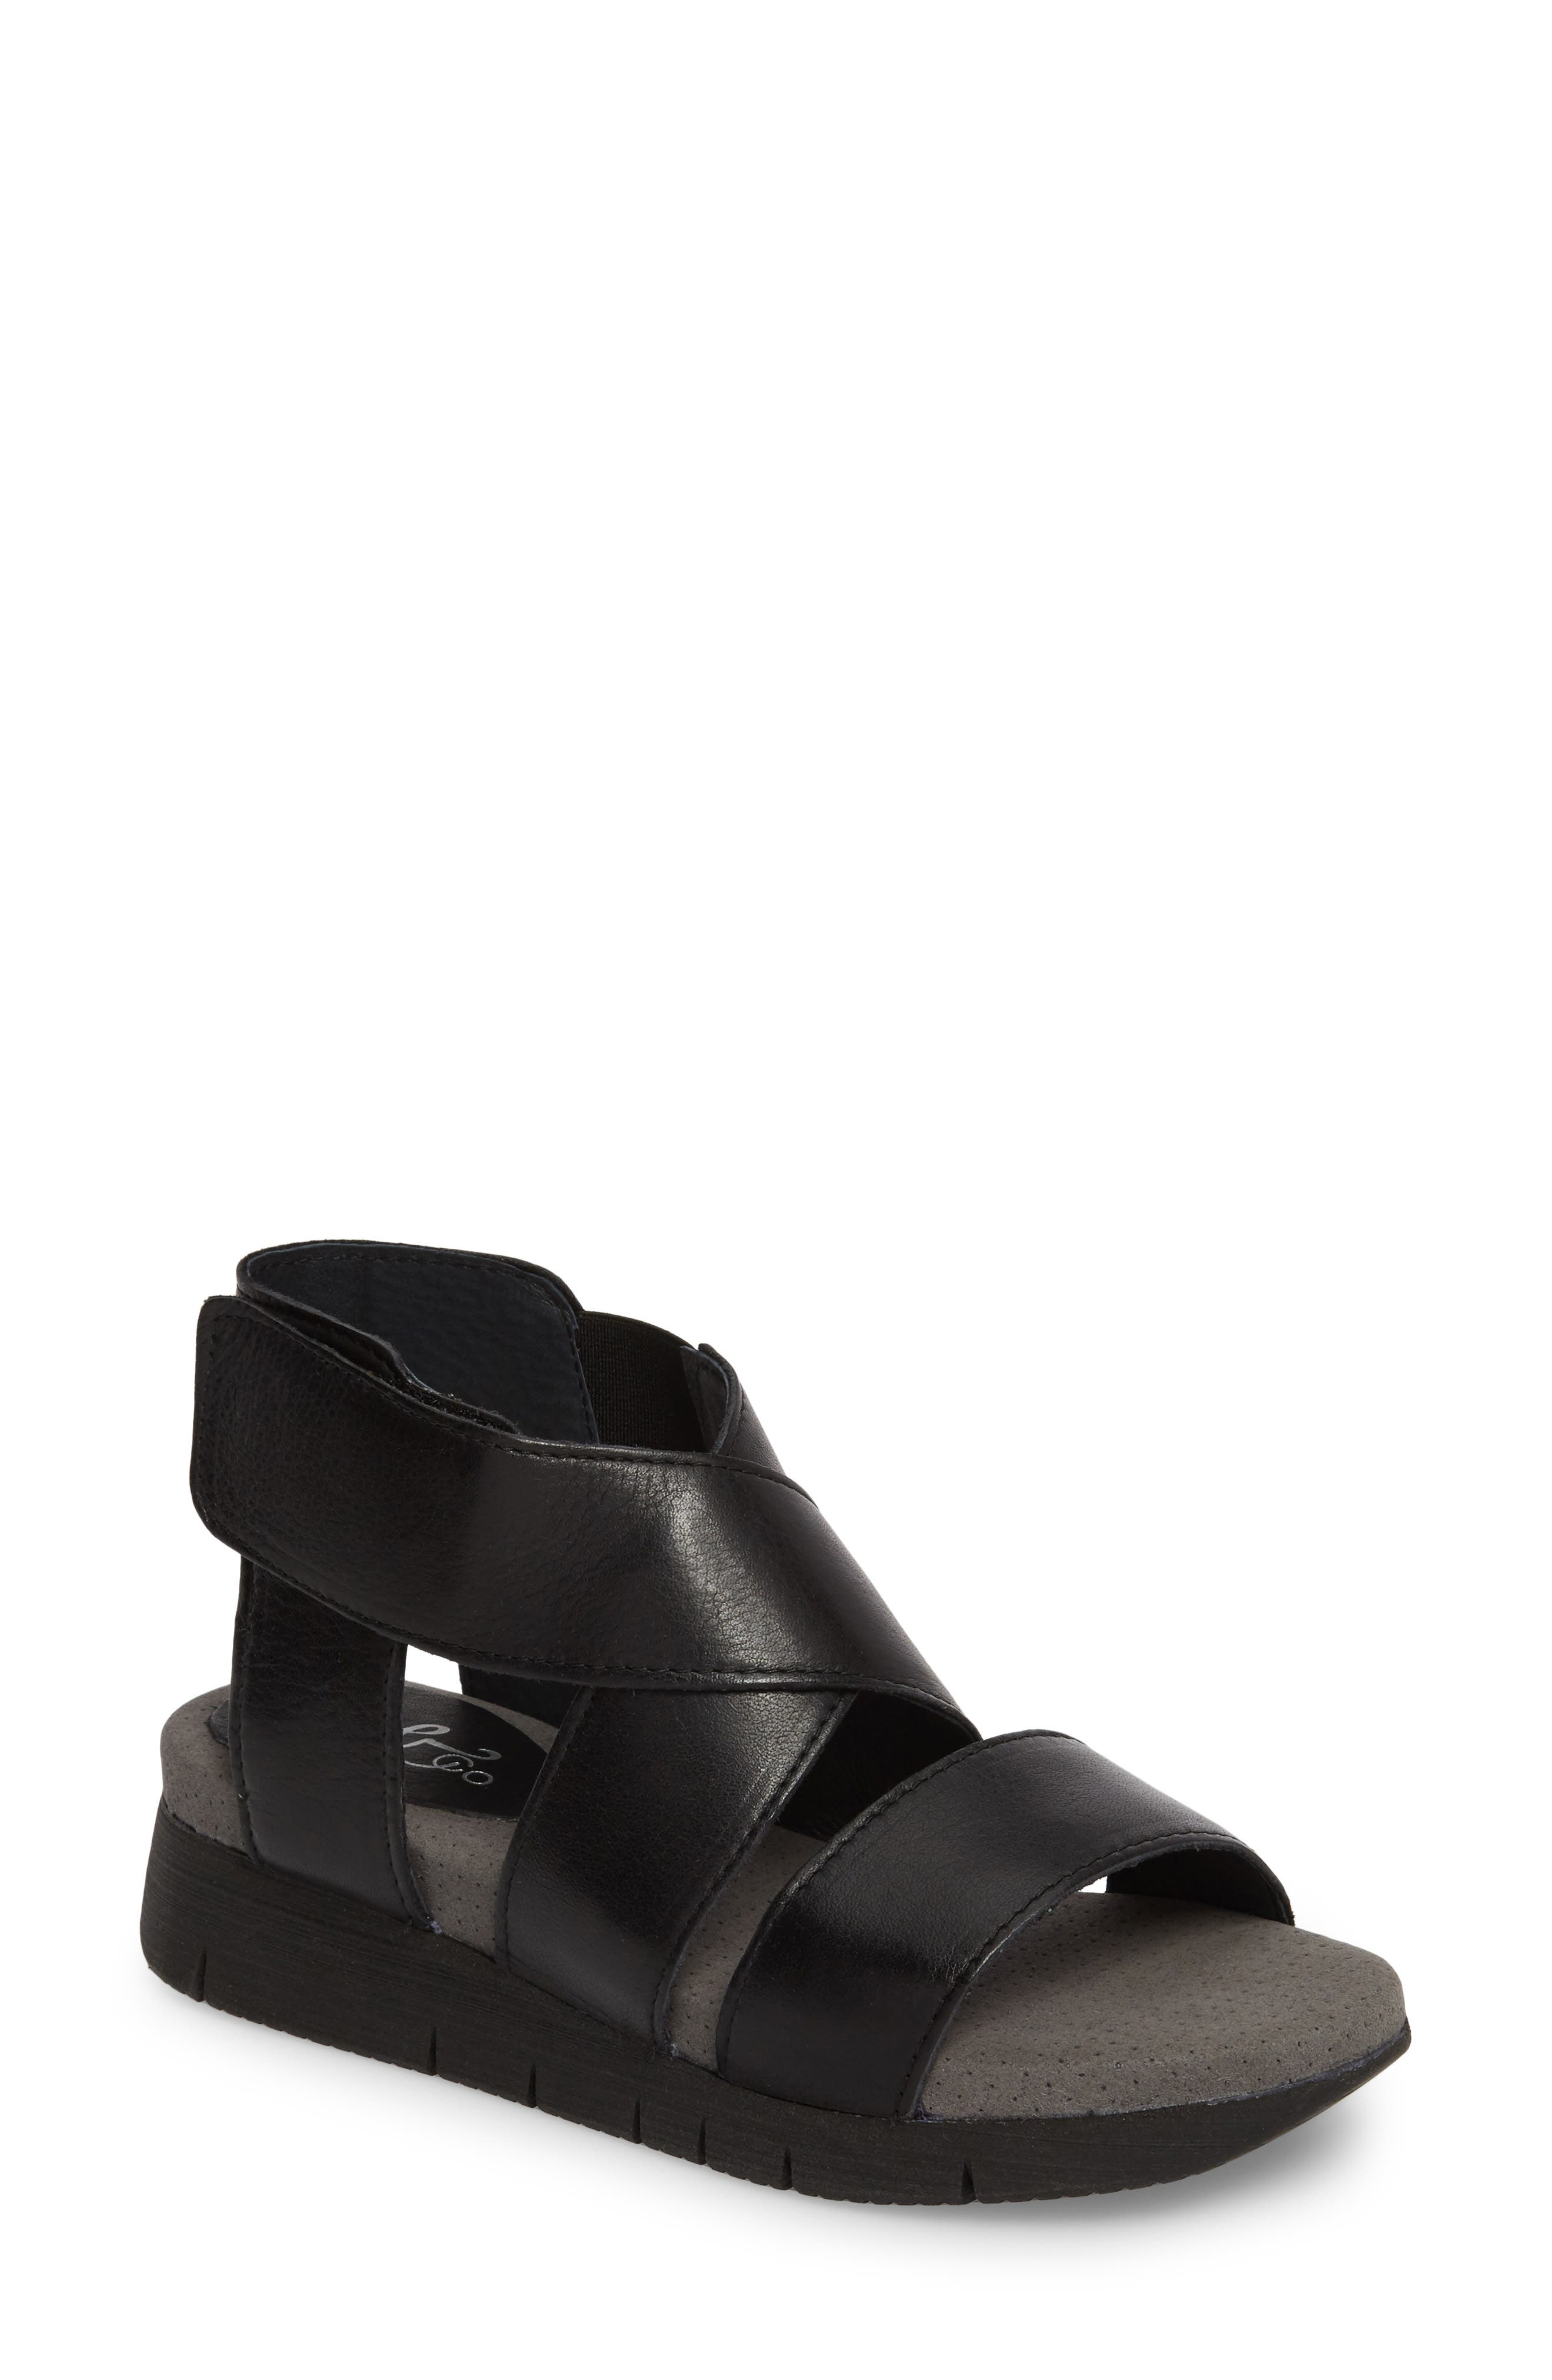 Bos. & Co. Piper Wedge Sandal - Black